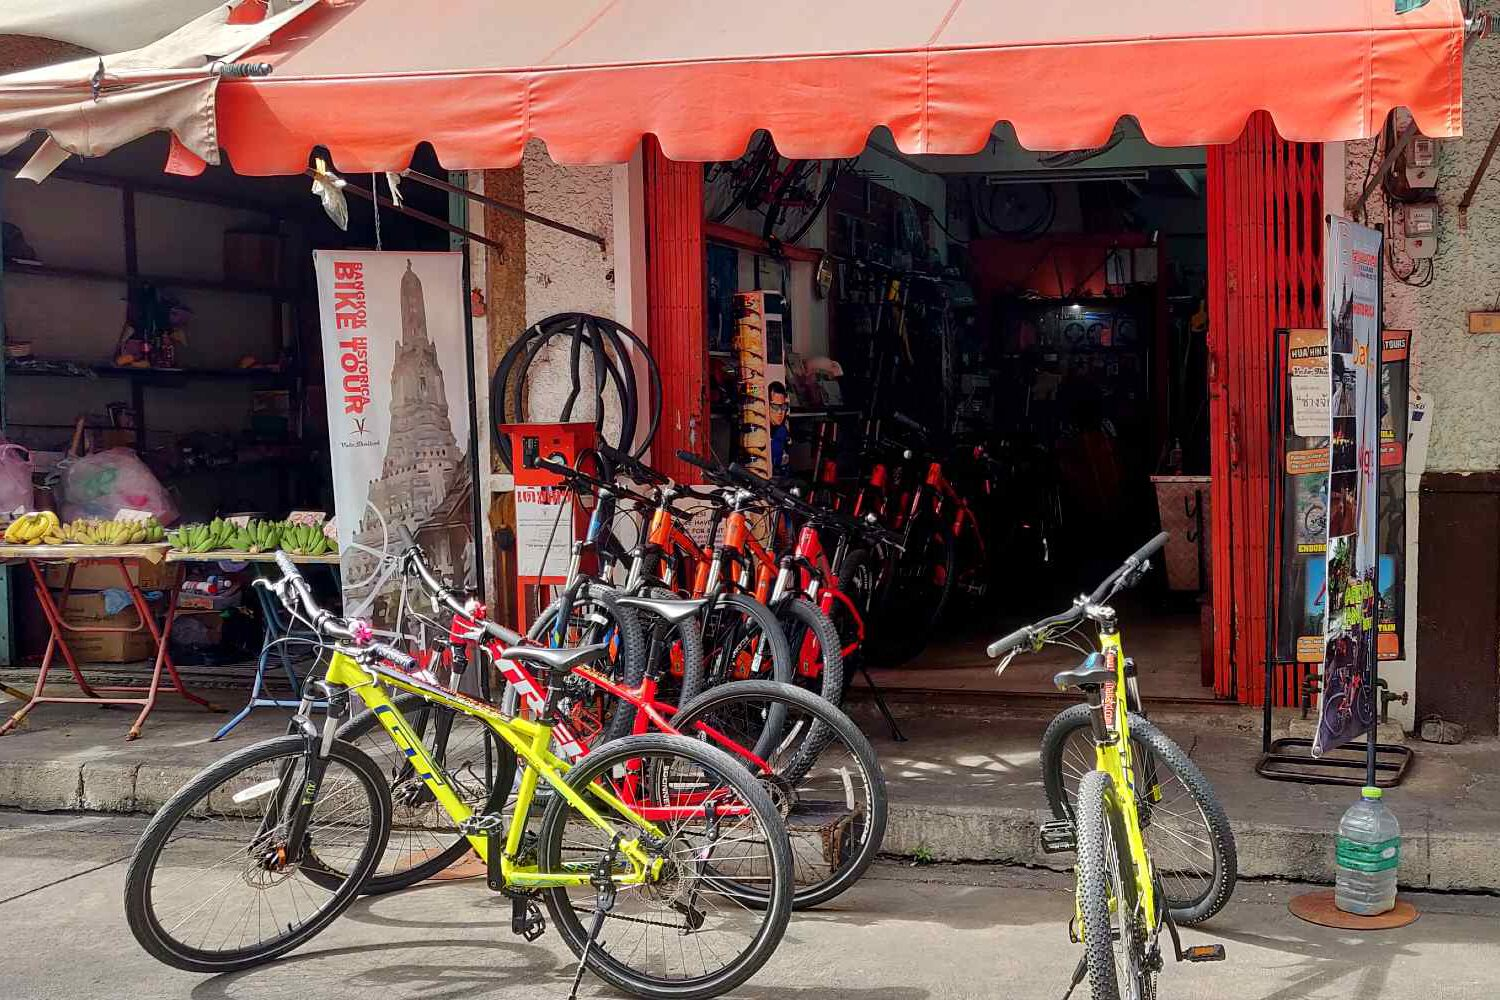 Bicycles in front of the door of bicycle rental company in Bangkok